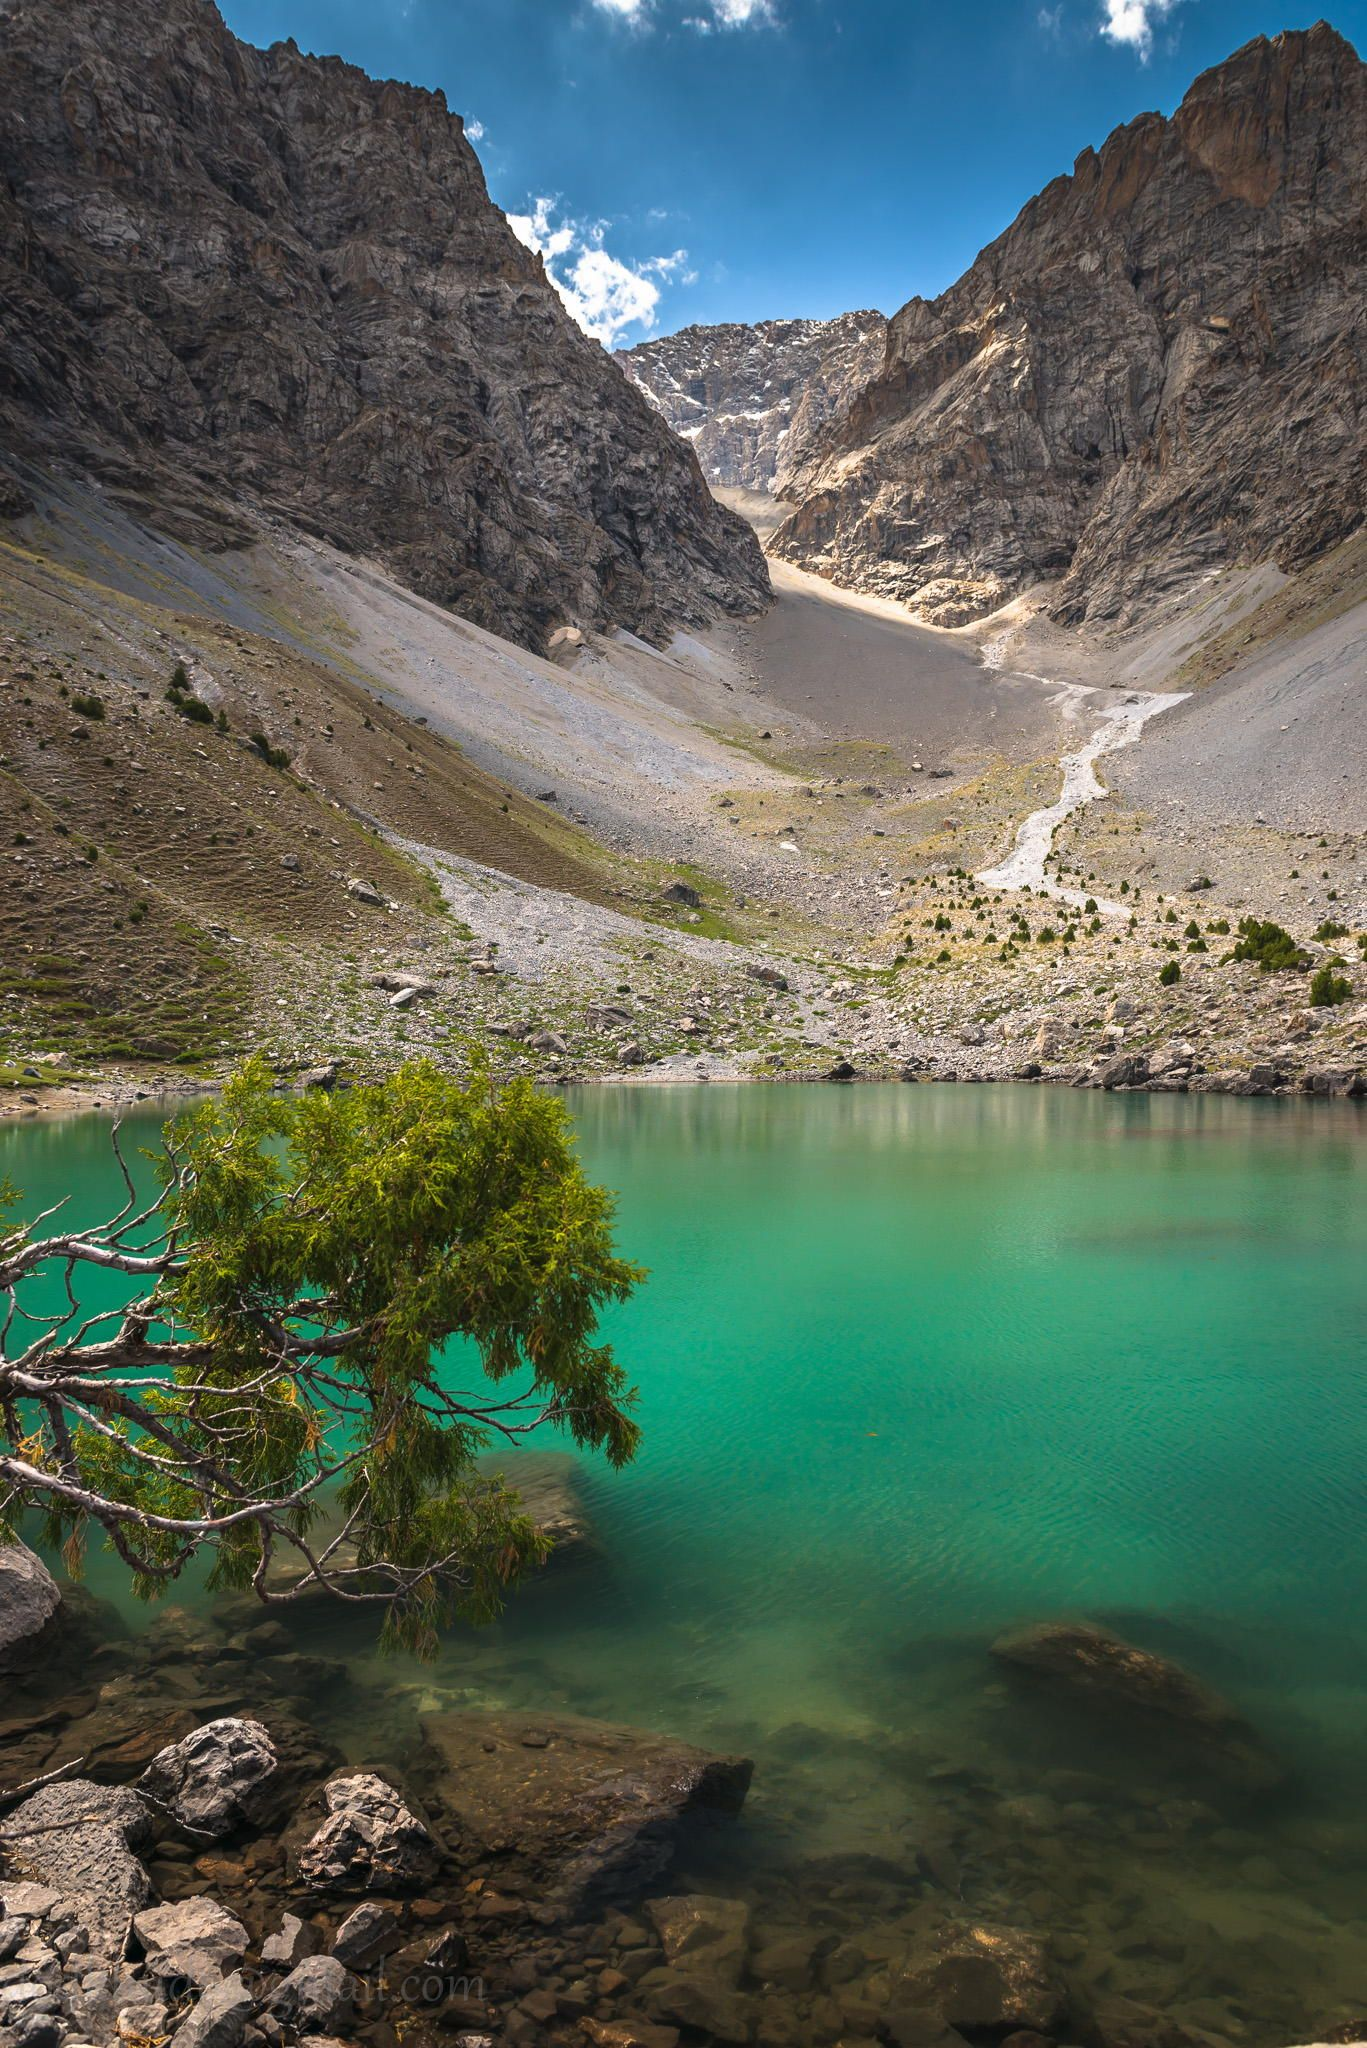 tajikistan is my motherland My motherland by rekha mandagere favourite haunt of gods a haven for all hindus muslims christians dwell also buddhists jains parsis and sikhs mother of myths and various legends land.